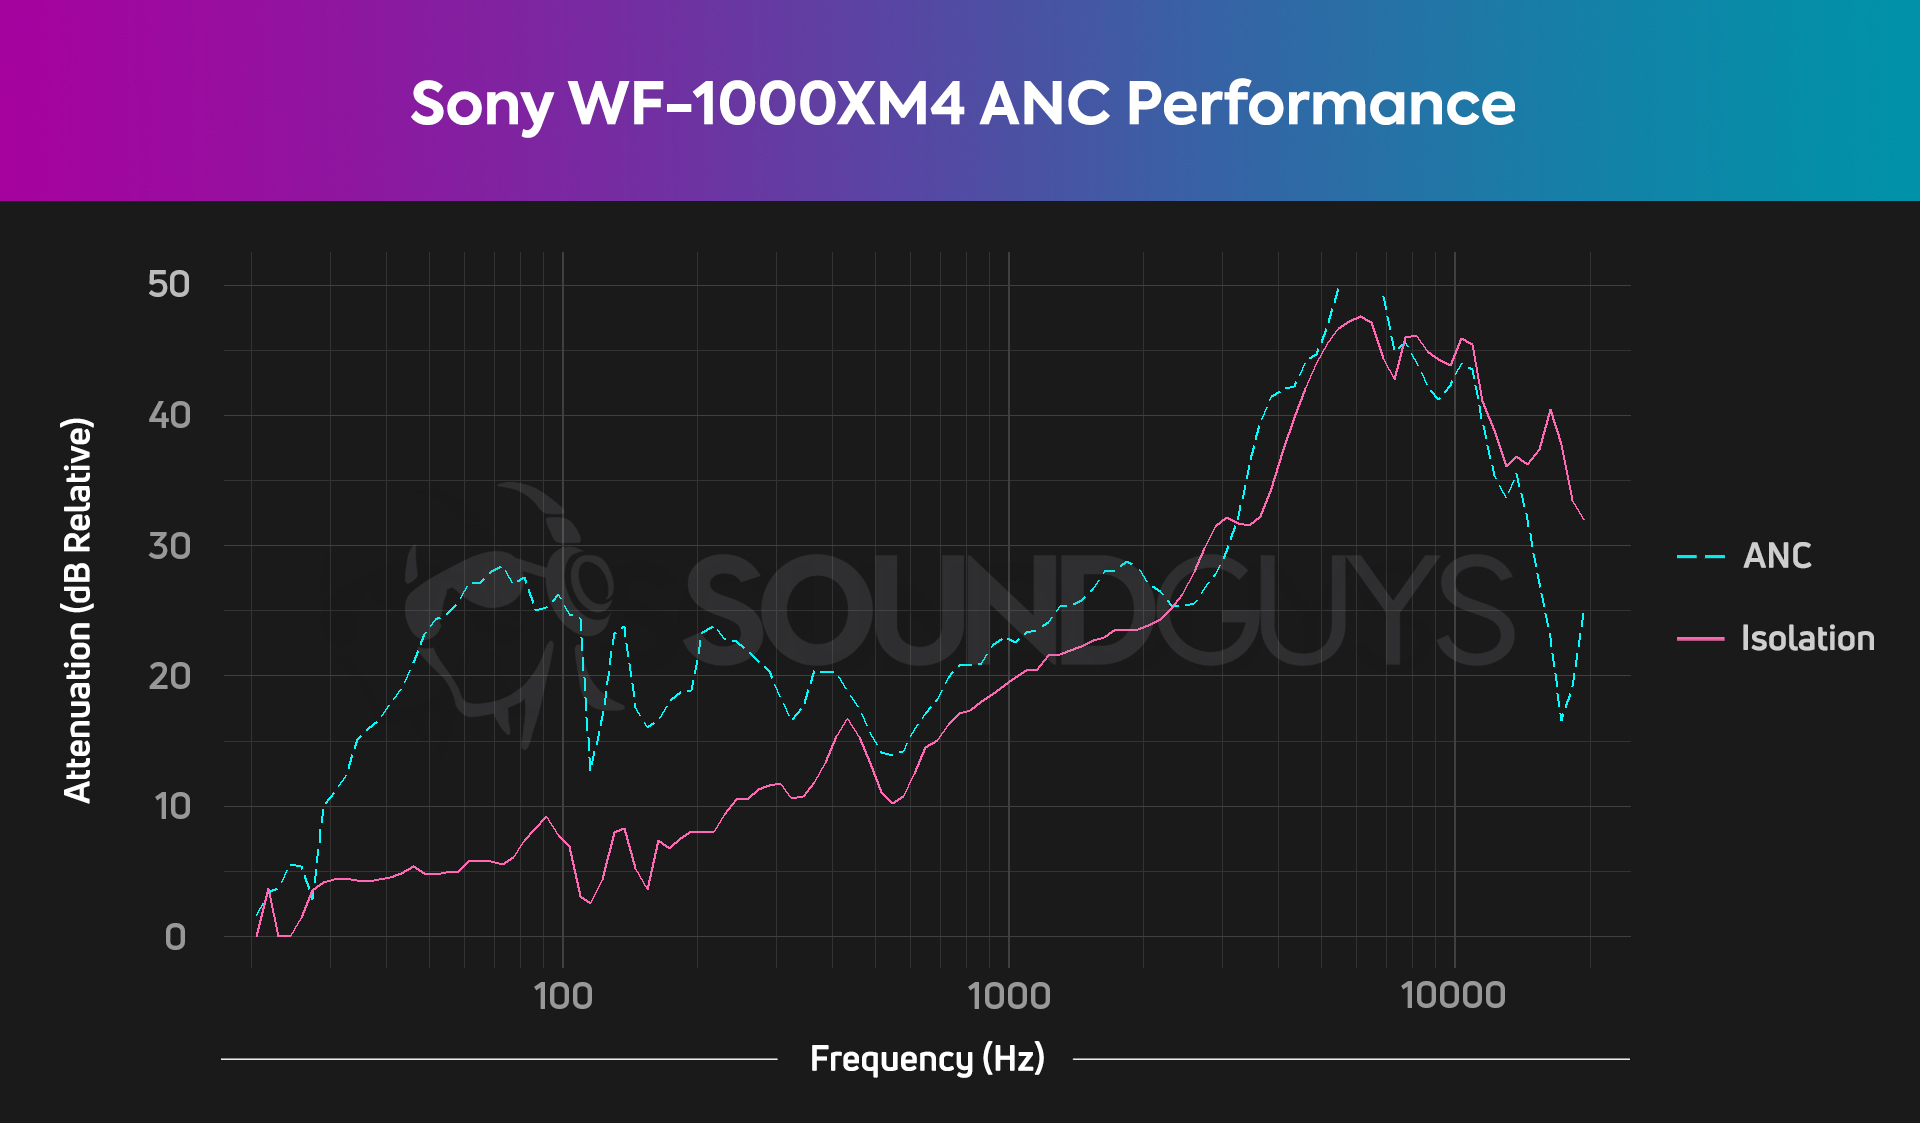 A chart shows the exceptional ANC and isolation performance of the Sony WF-1000XM4 true wireless earphones.